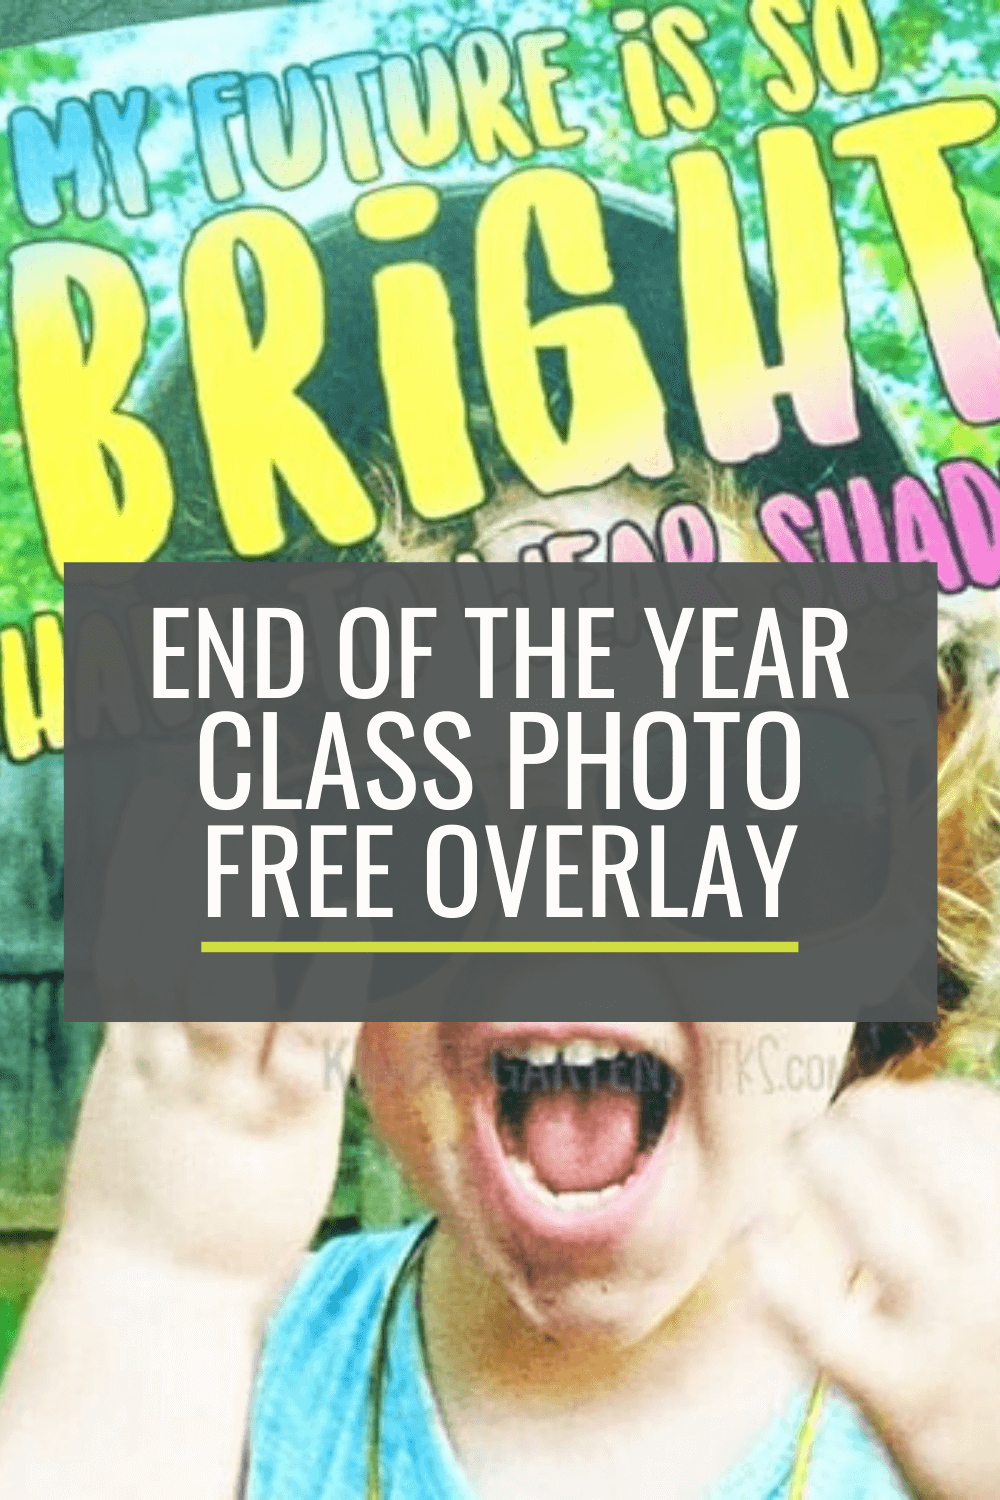 Free Overlay for an End of the Year Class Photo